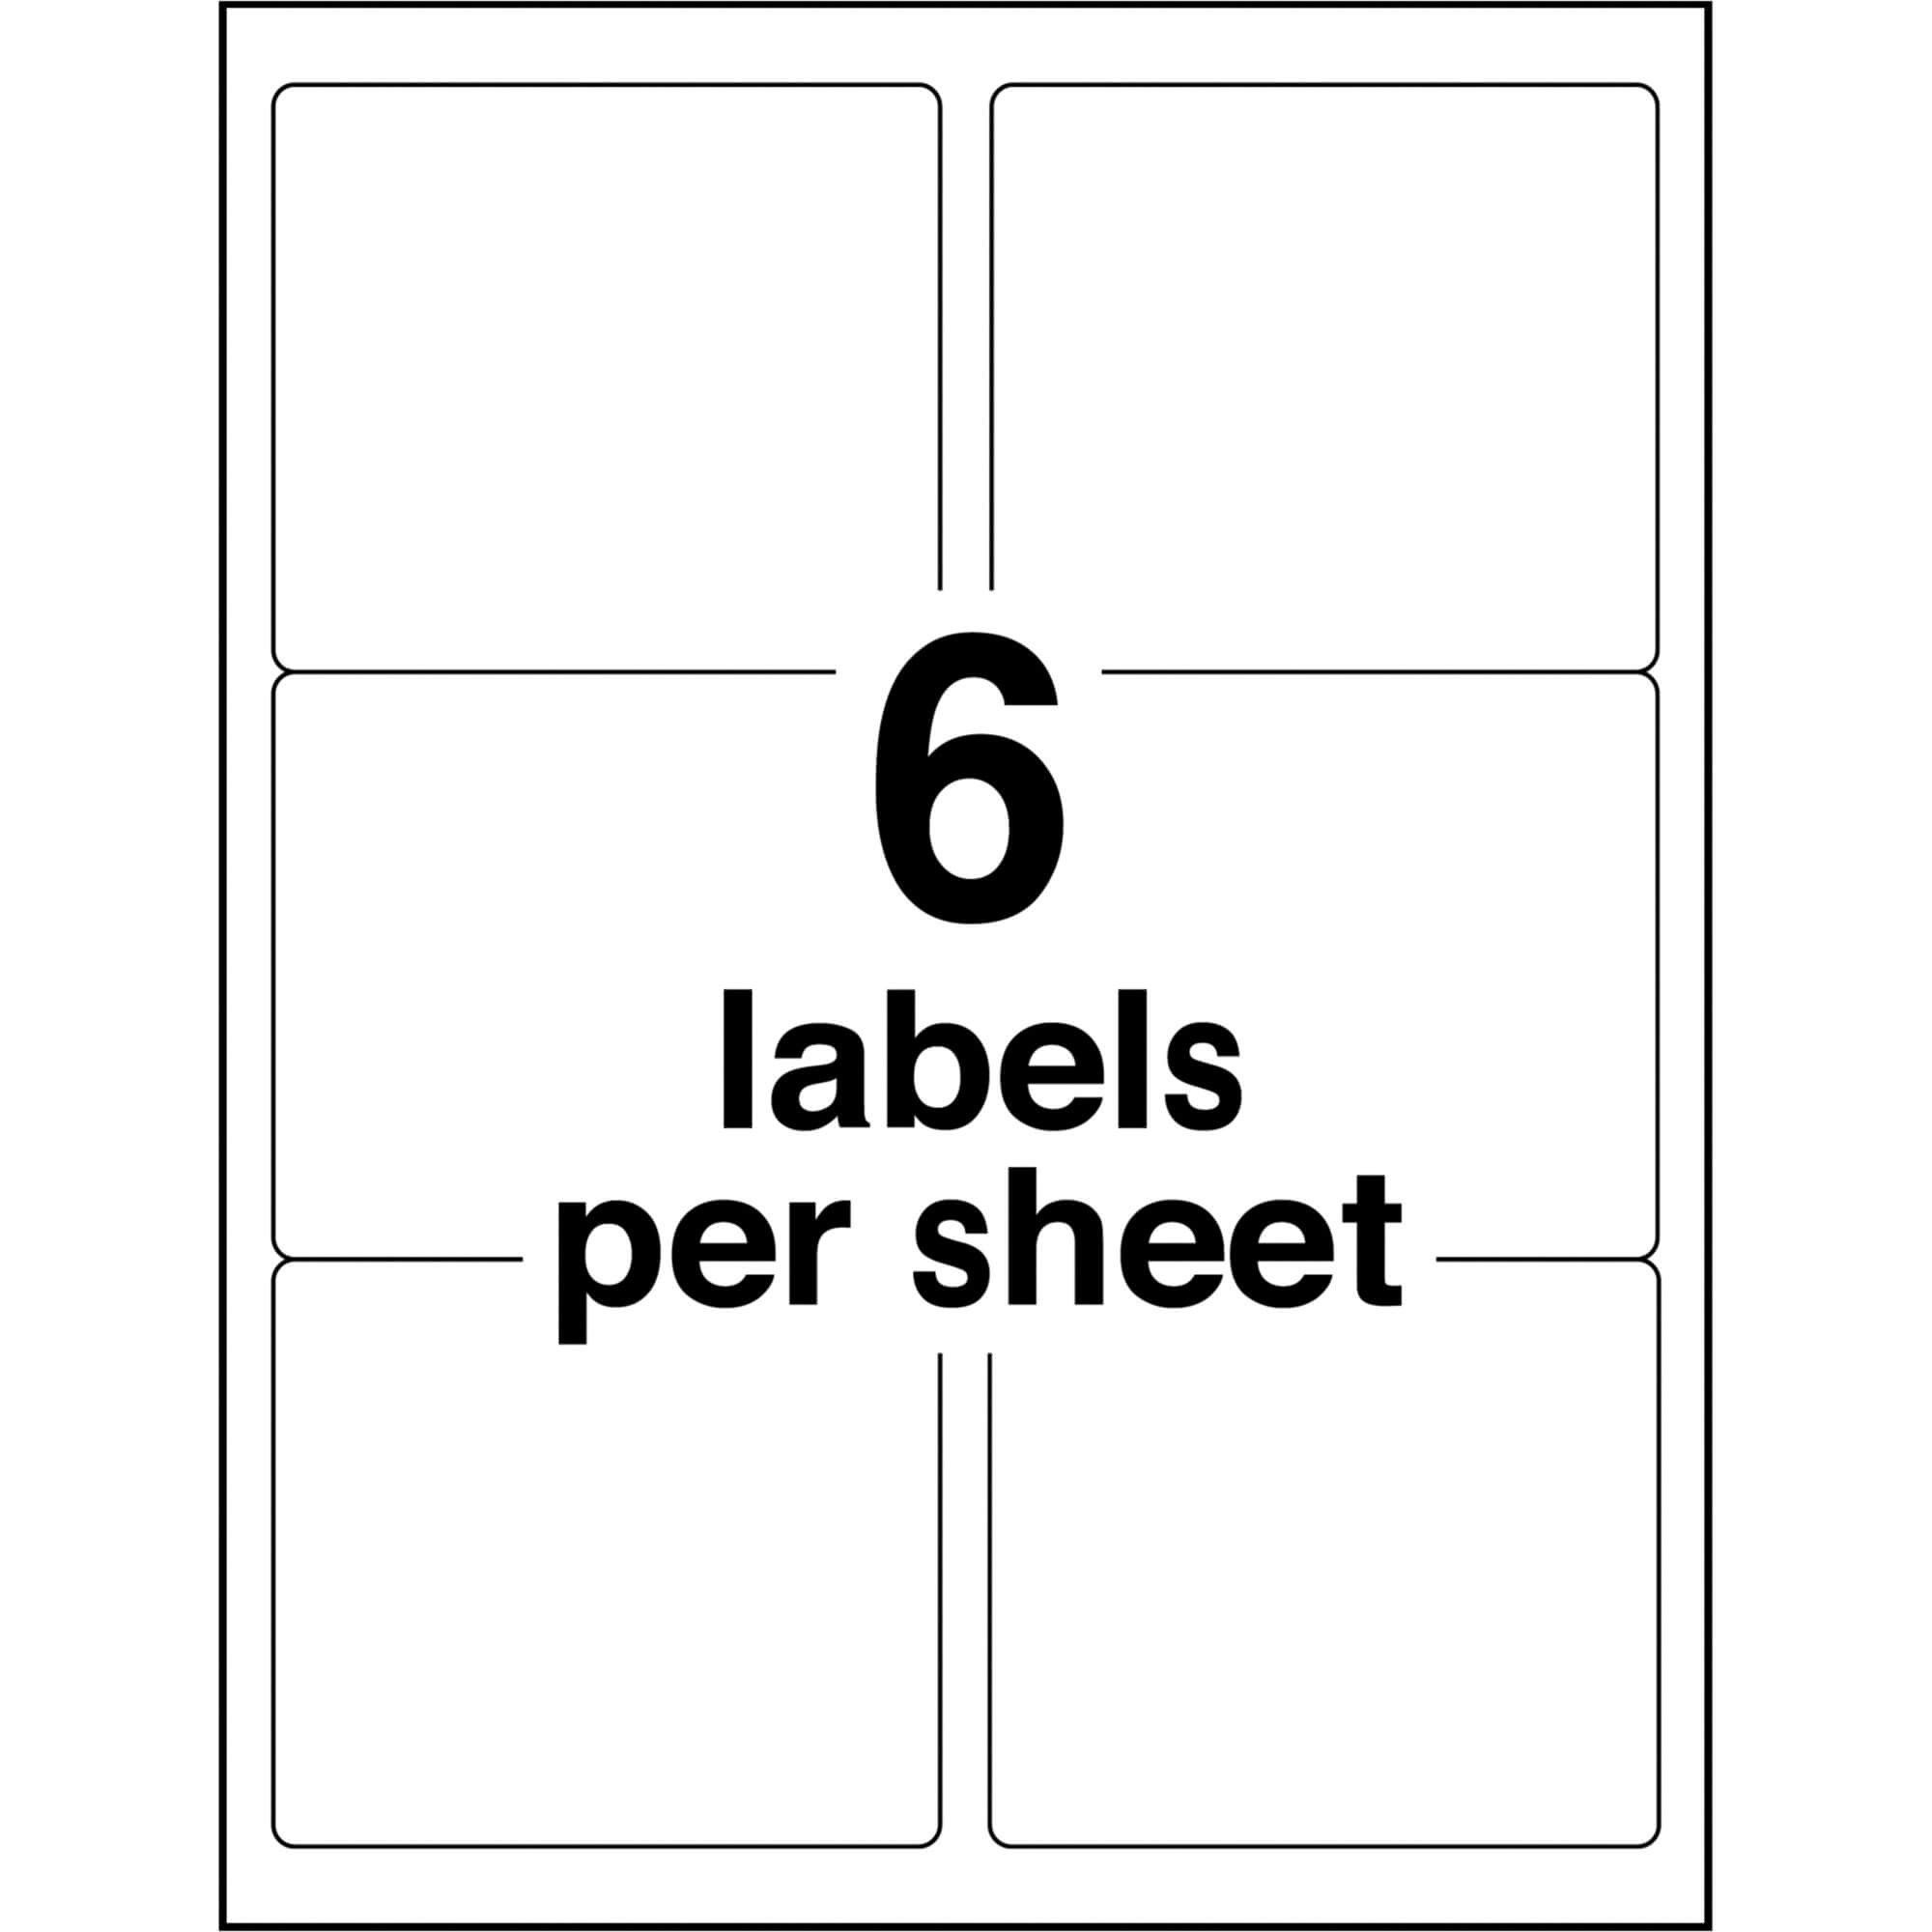 """Avery® Shipping Labels With Trueblock Technology - Permanent Adhesive - 3  21/64"""" Width X 4"""" Length - Rectangle - Laser, Inkjet - White - 6 / Sheet - regarding Labels 8 Per Sheet Template Word"""